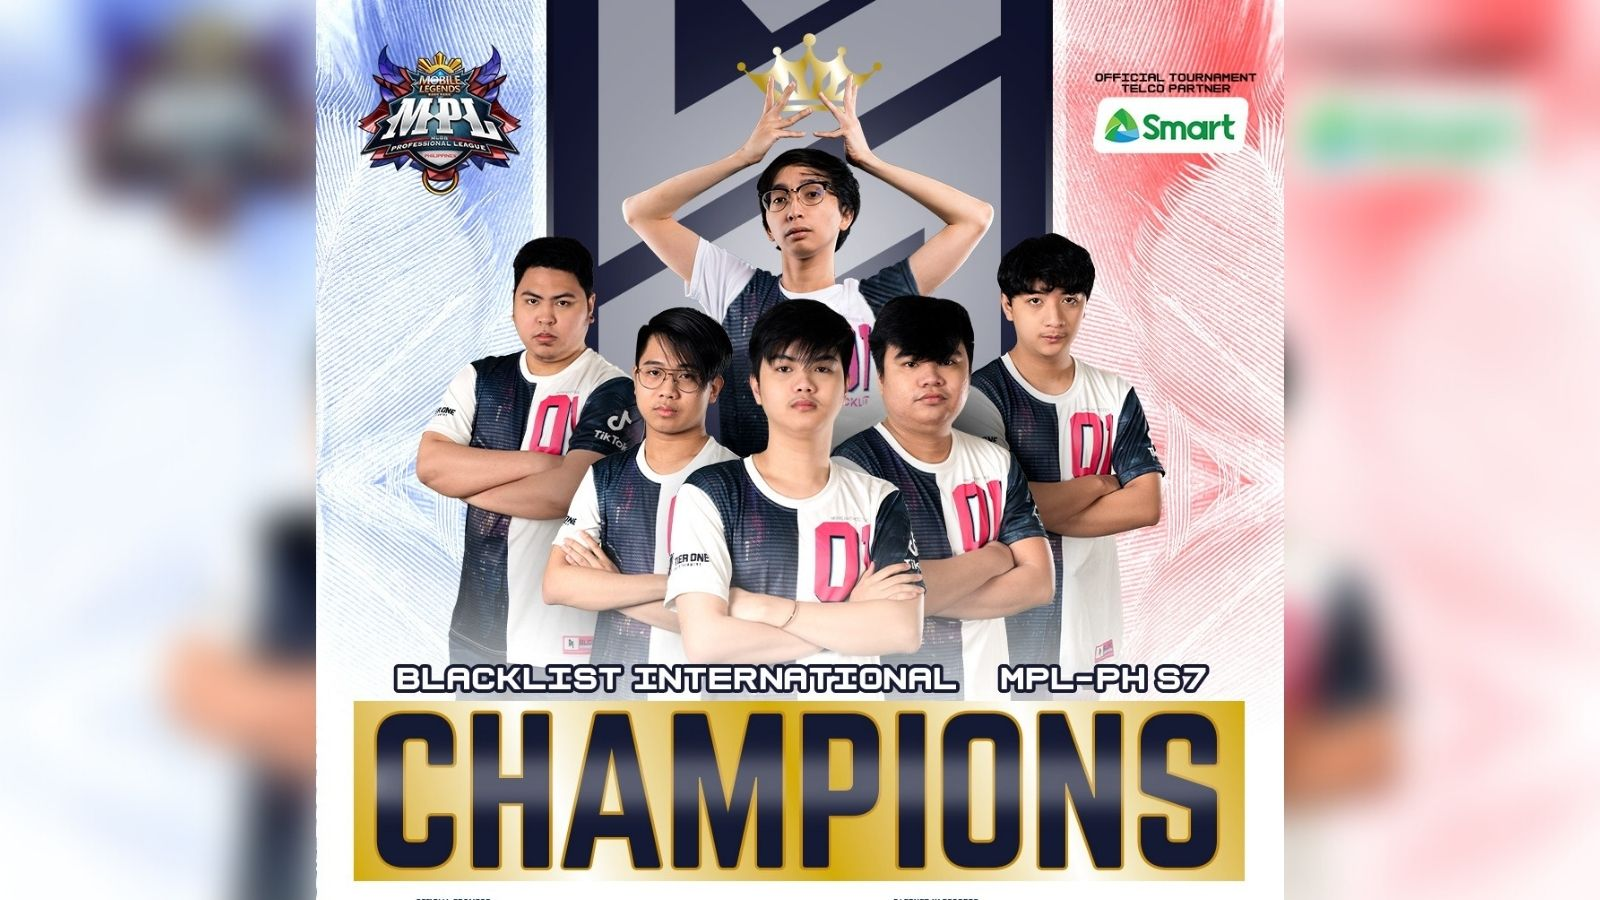 Blacklist International overcome Execration 4-3 to become MPL PH S7 champions